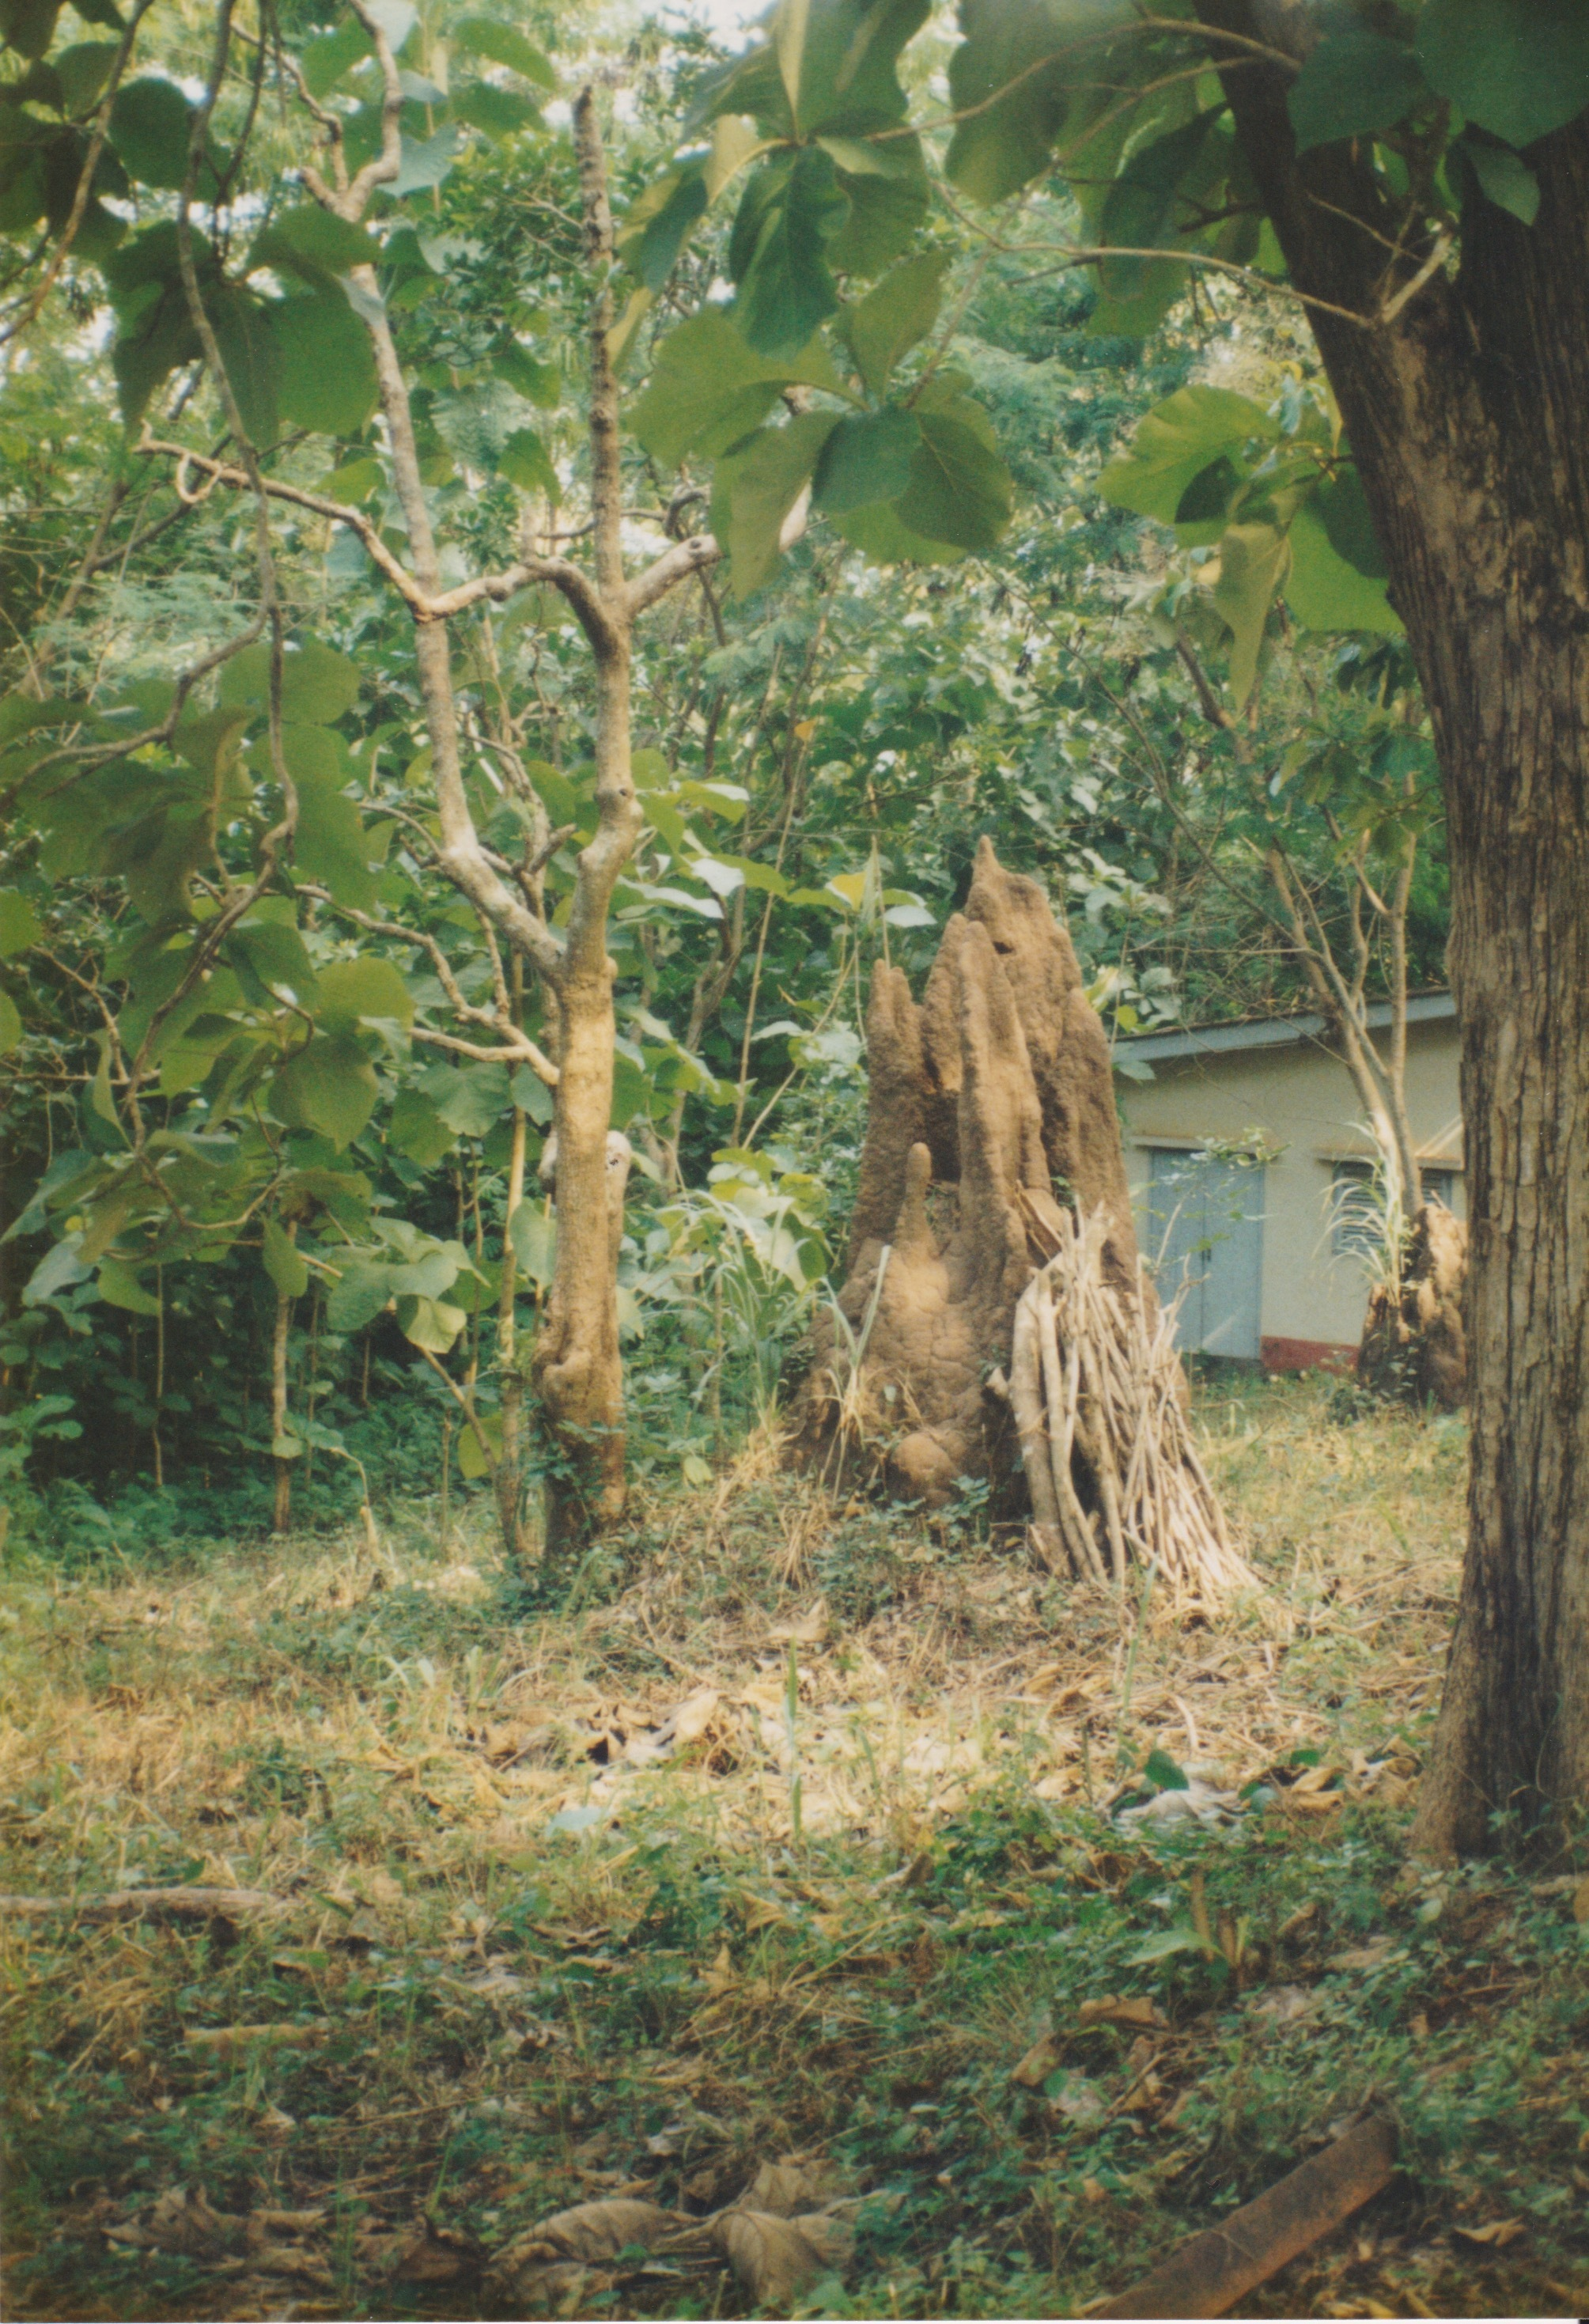 Termite mound in West Africa